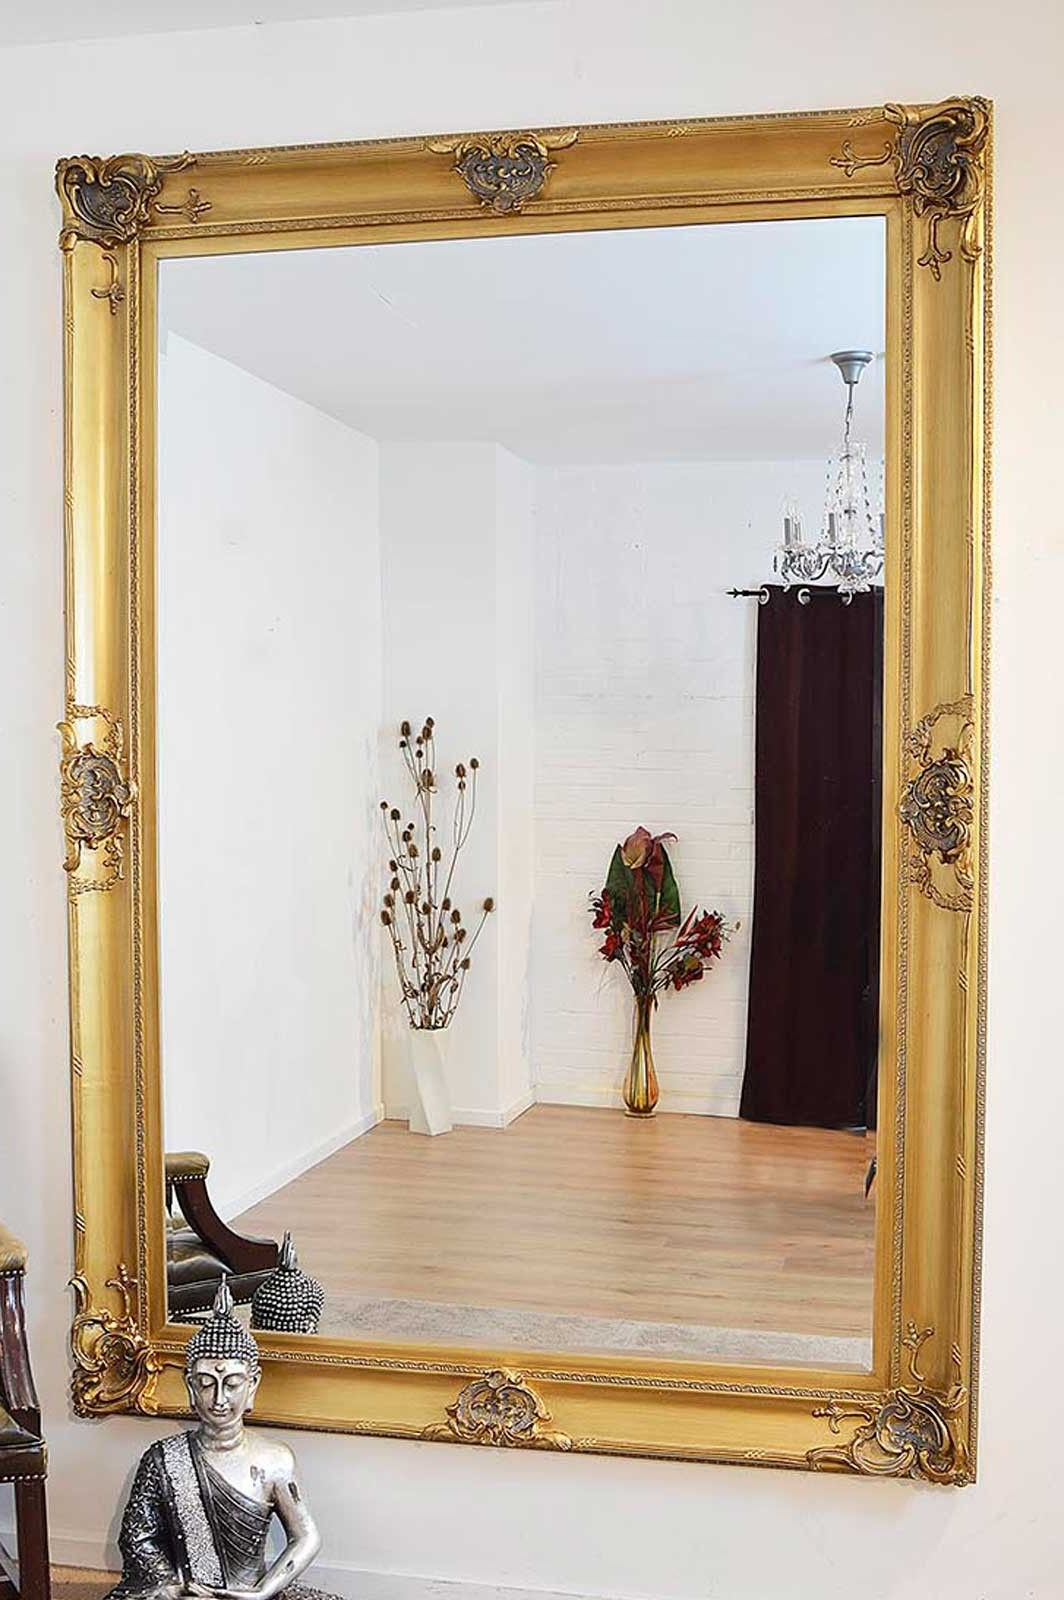 Well Known Beautiful Large Gold Decorative Ornate Wall Mirror 7ft X 5ft (213 X With Regard To Extra Large Framed Wall Mirrors (View 4 of 20)